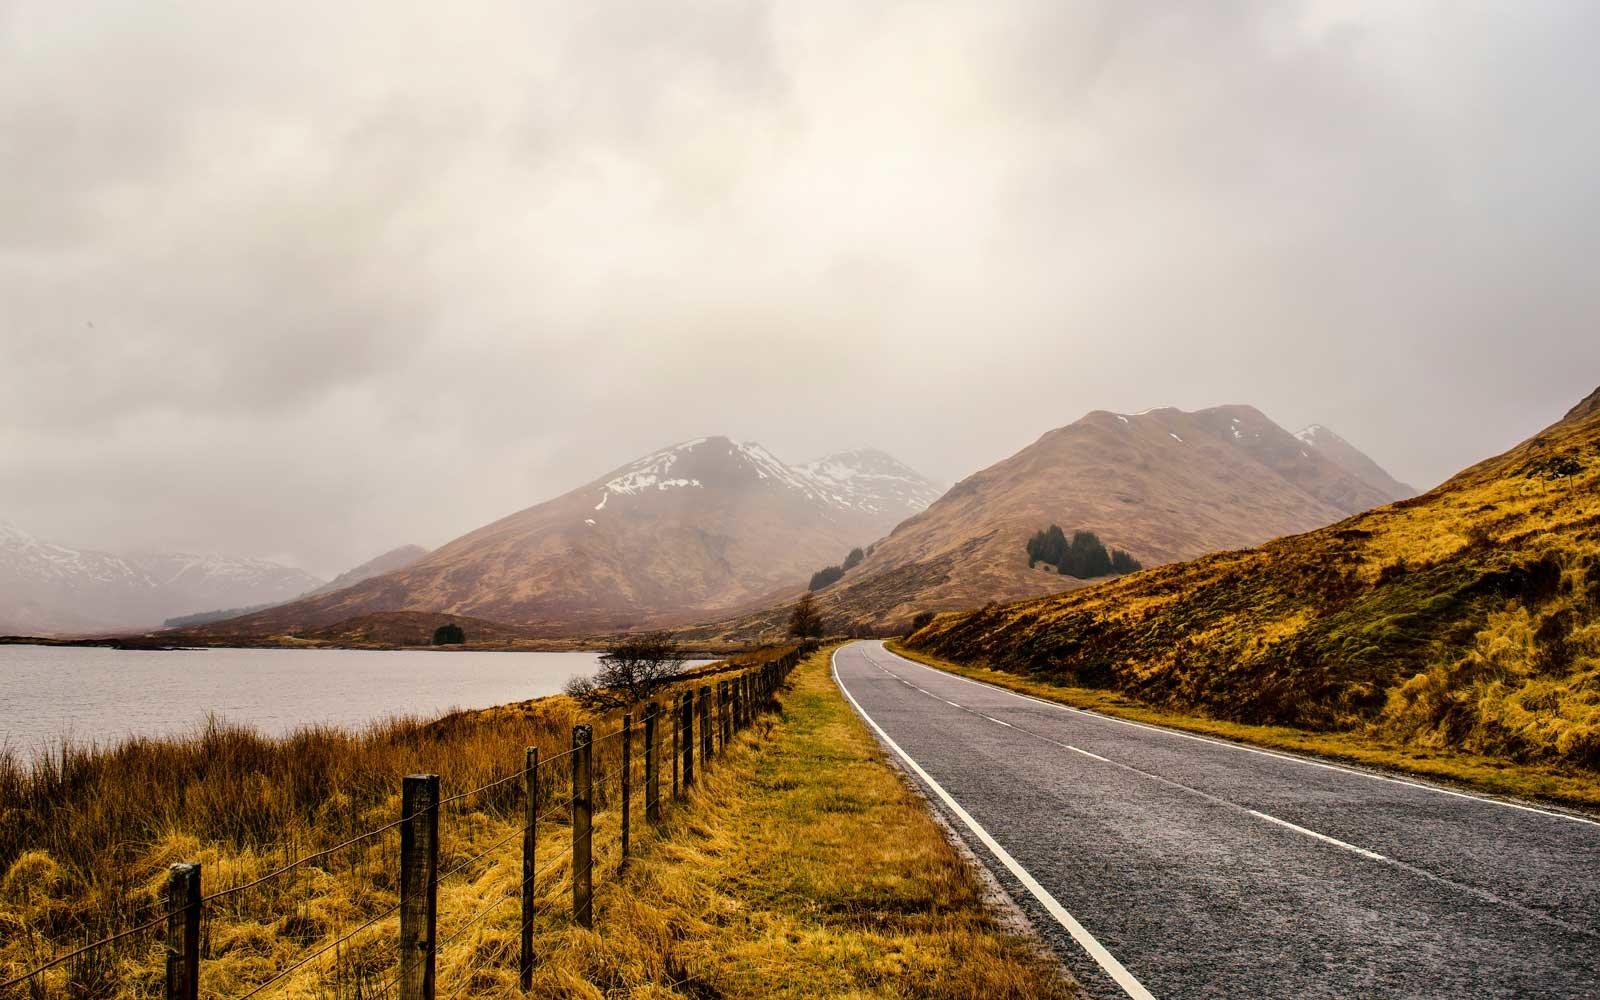 A Drive Through the Scottish Highlands Brings You Face to Face With Ancient Ruins, Nessie's Home, and Plenty of Sheep